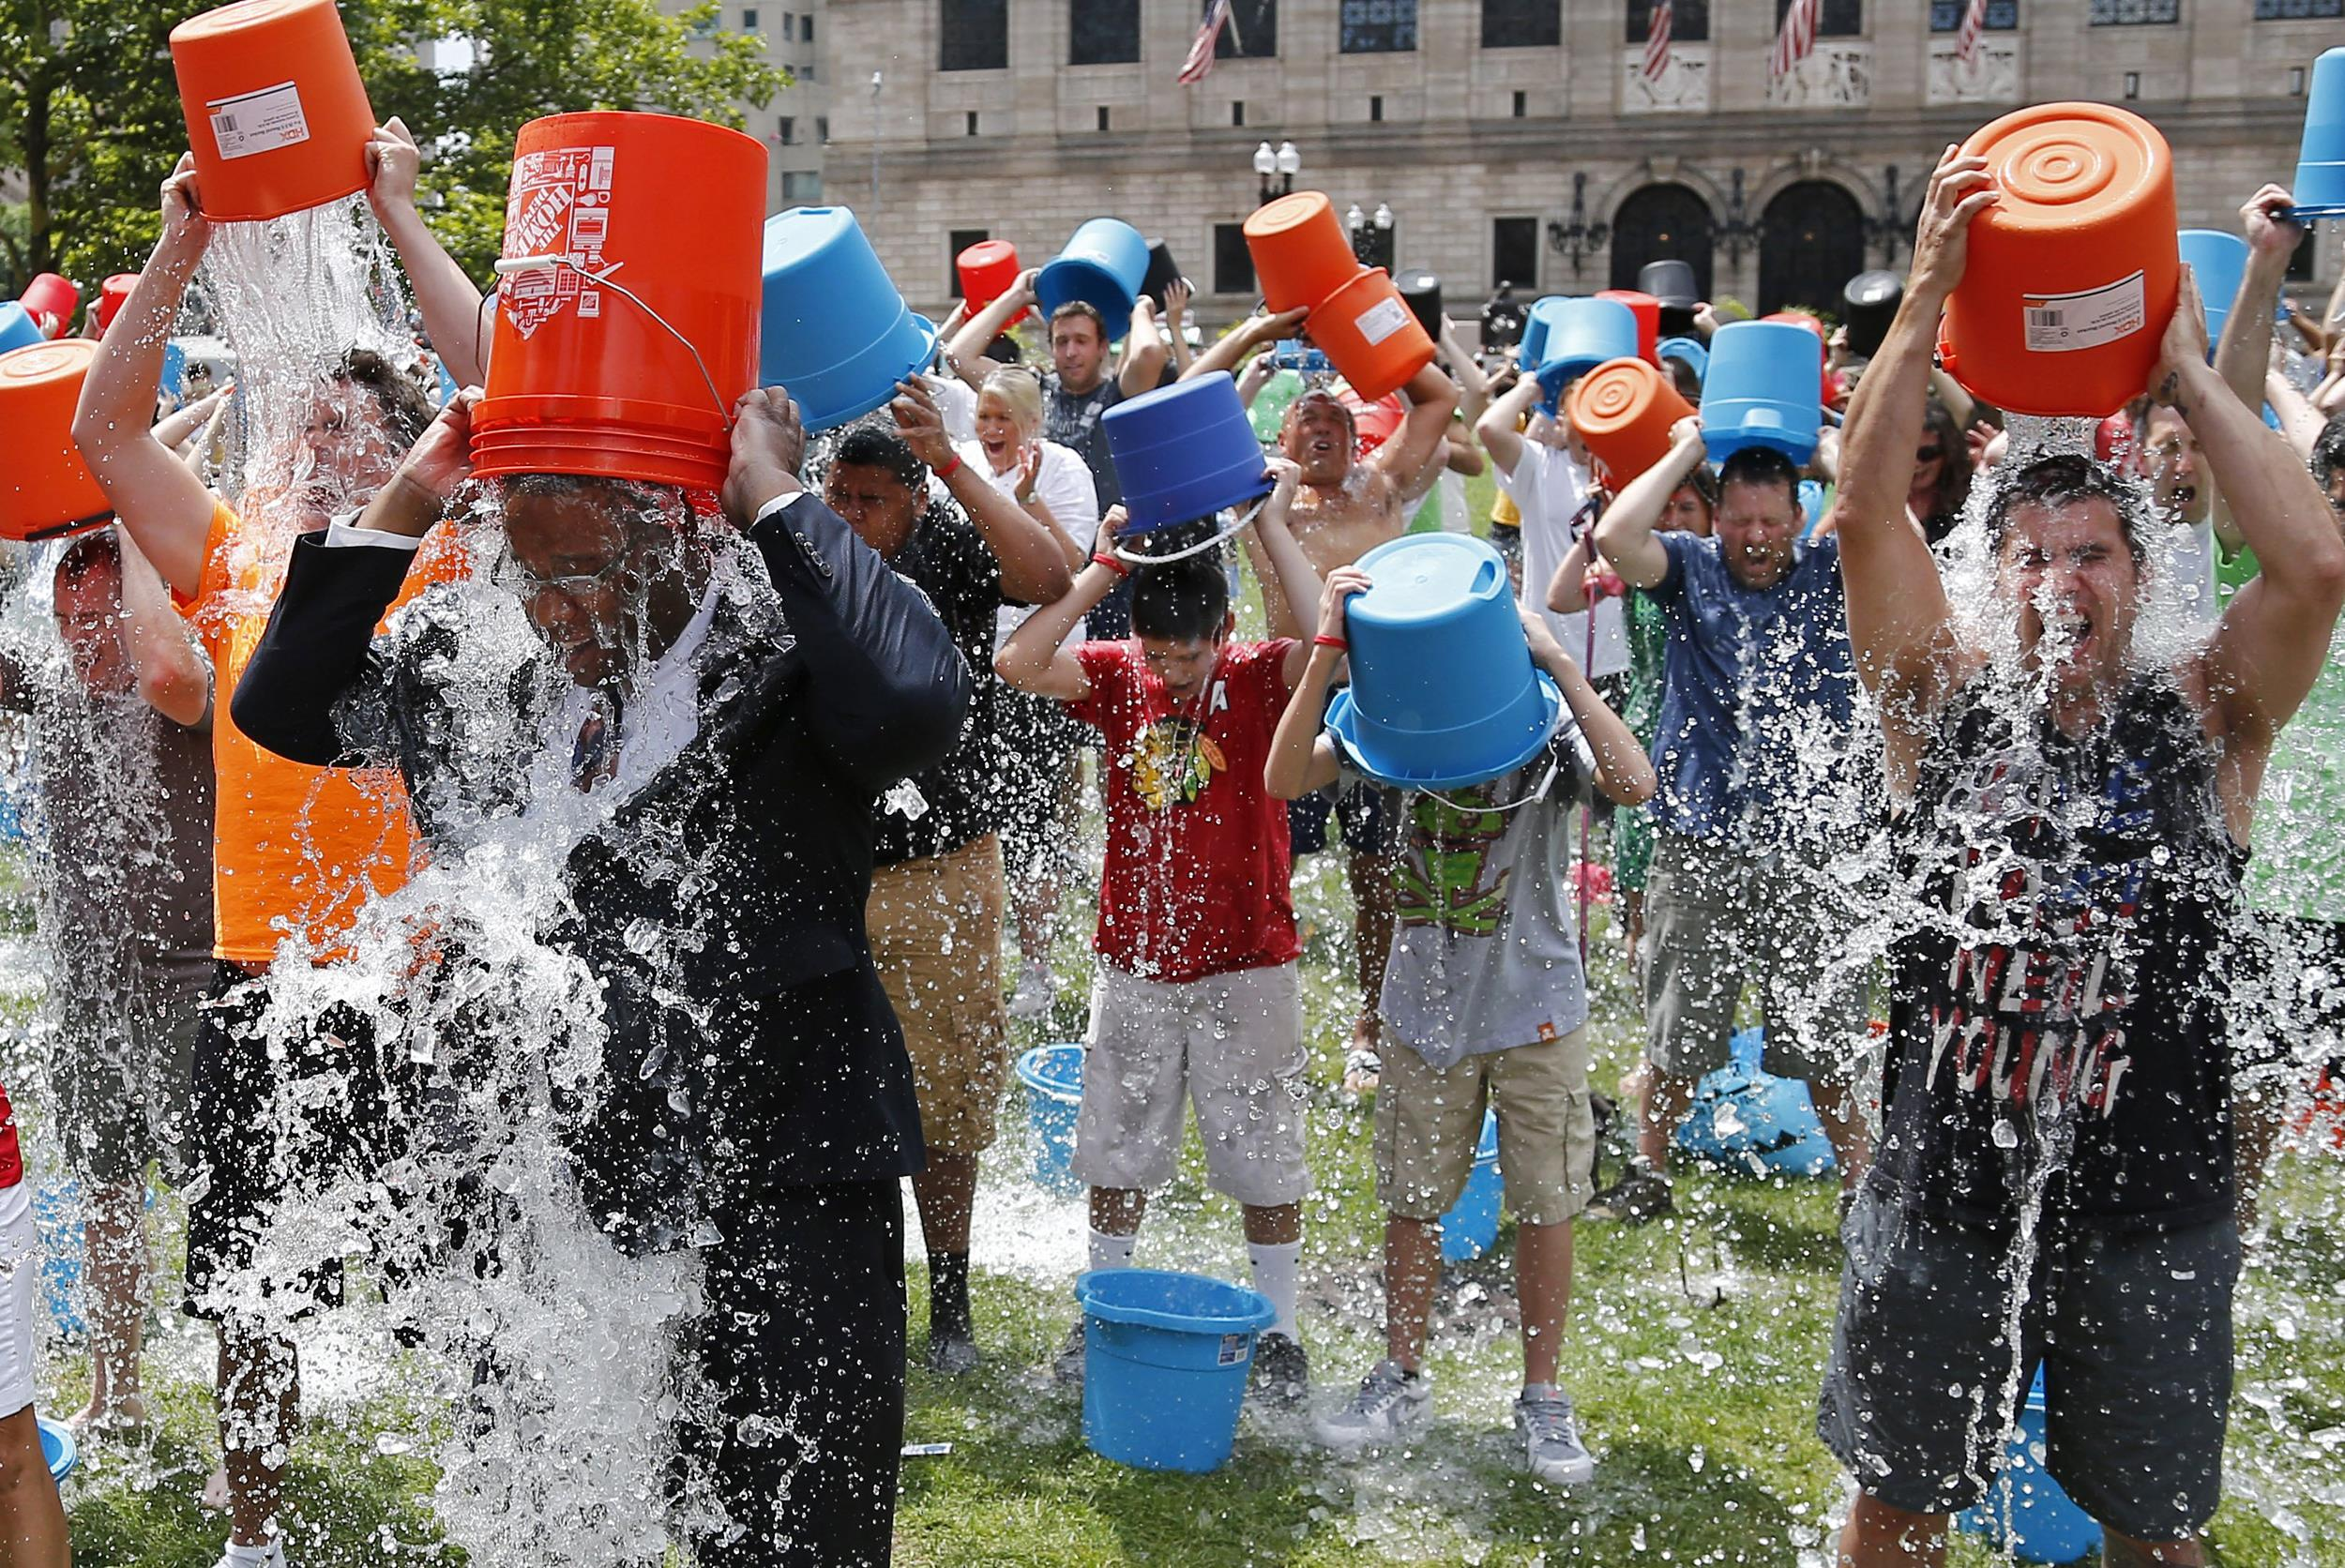 Image: Boston City Councillor Tito Jackson, left in suit, leads some 200 people in the ice bucket challenge at Boston's Copley Square, on Aug. 7